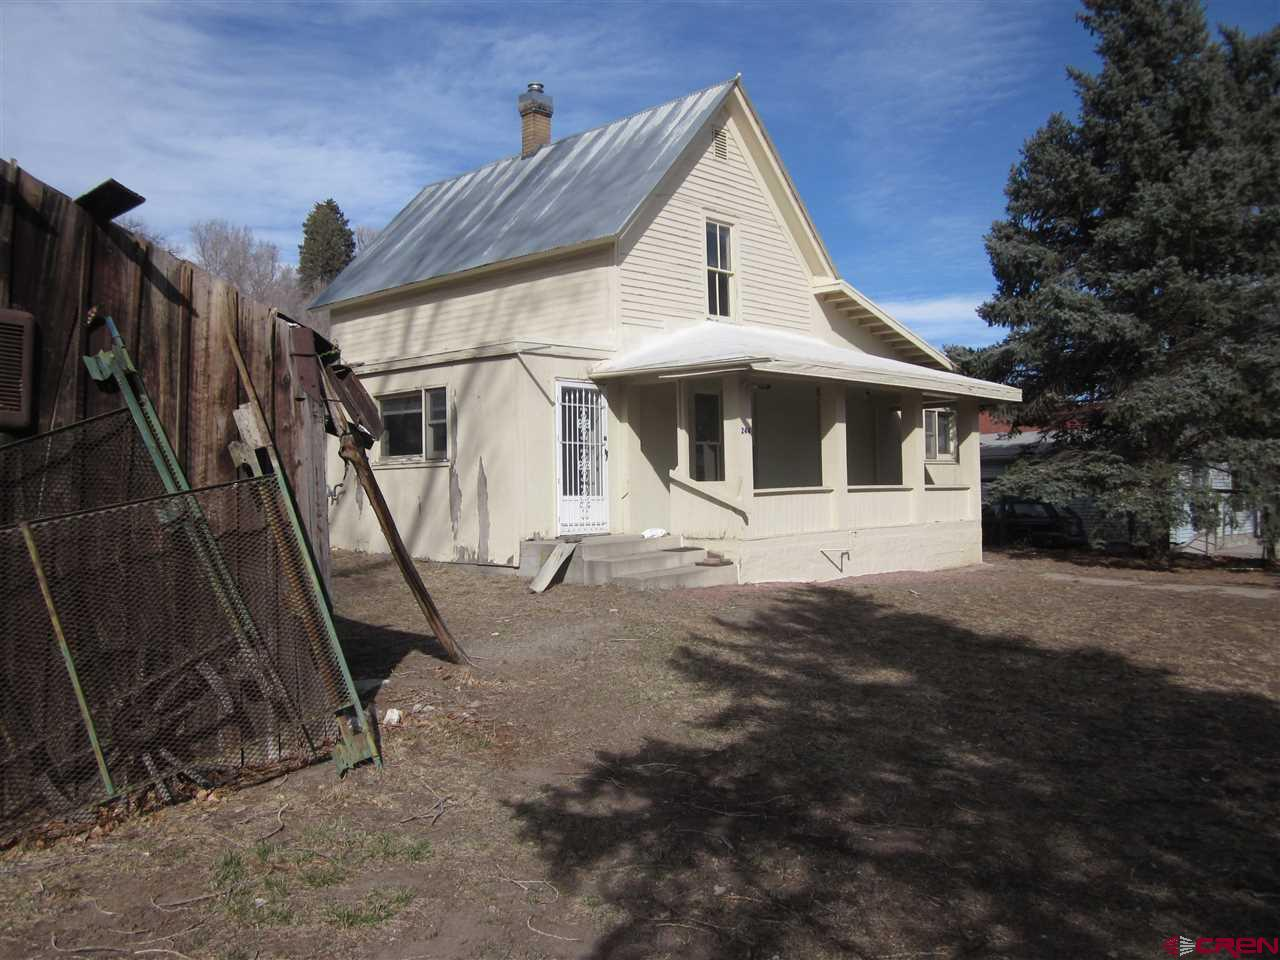 Preliminary work is started on this great project. Remodel this historic home in downtown Hotchkiss on the fantastic sunny side of the street. Two deeded parcels of land, with two addresses, with deeded ROW. Located next to the existing Town Hall. 2-blocks from restaurants, library, medical offices.  Initial work has already begun: new 2020 survey with boundary adjustments, added land to parcels, topo-elevation map, pre-remodel testing and Permit Ready Architectural Plans are available. New 220 volt electric to Property, 2-meters, new gas line, and new water line. Remodel to a 2, 500 square foot, 4-bedroom, 2.5 baths. This easily would be the finest house in old town Hotchkiss after renovation. Builders get ready to partner up on this one. Motivated seller.